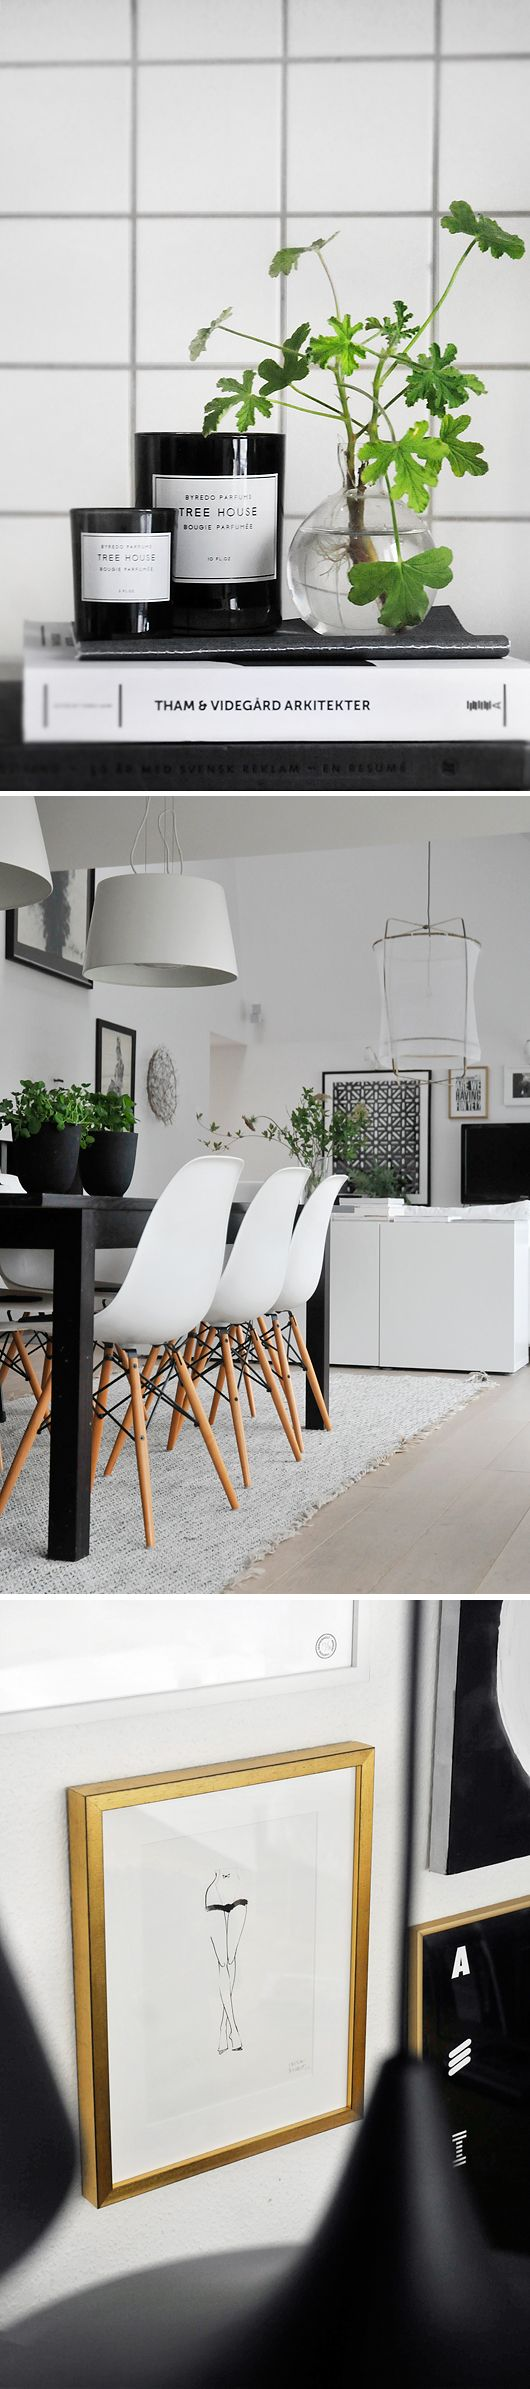 Trendenser.se #interior #white #clean #house #home #inspiration #decoration #deco #scandinavian #swedish #design #budget #love